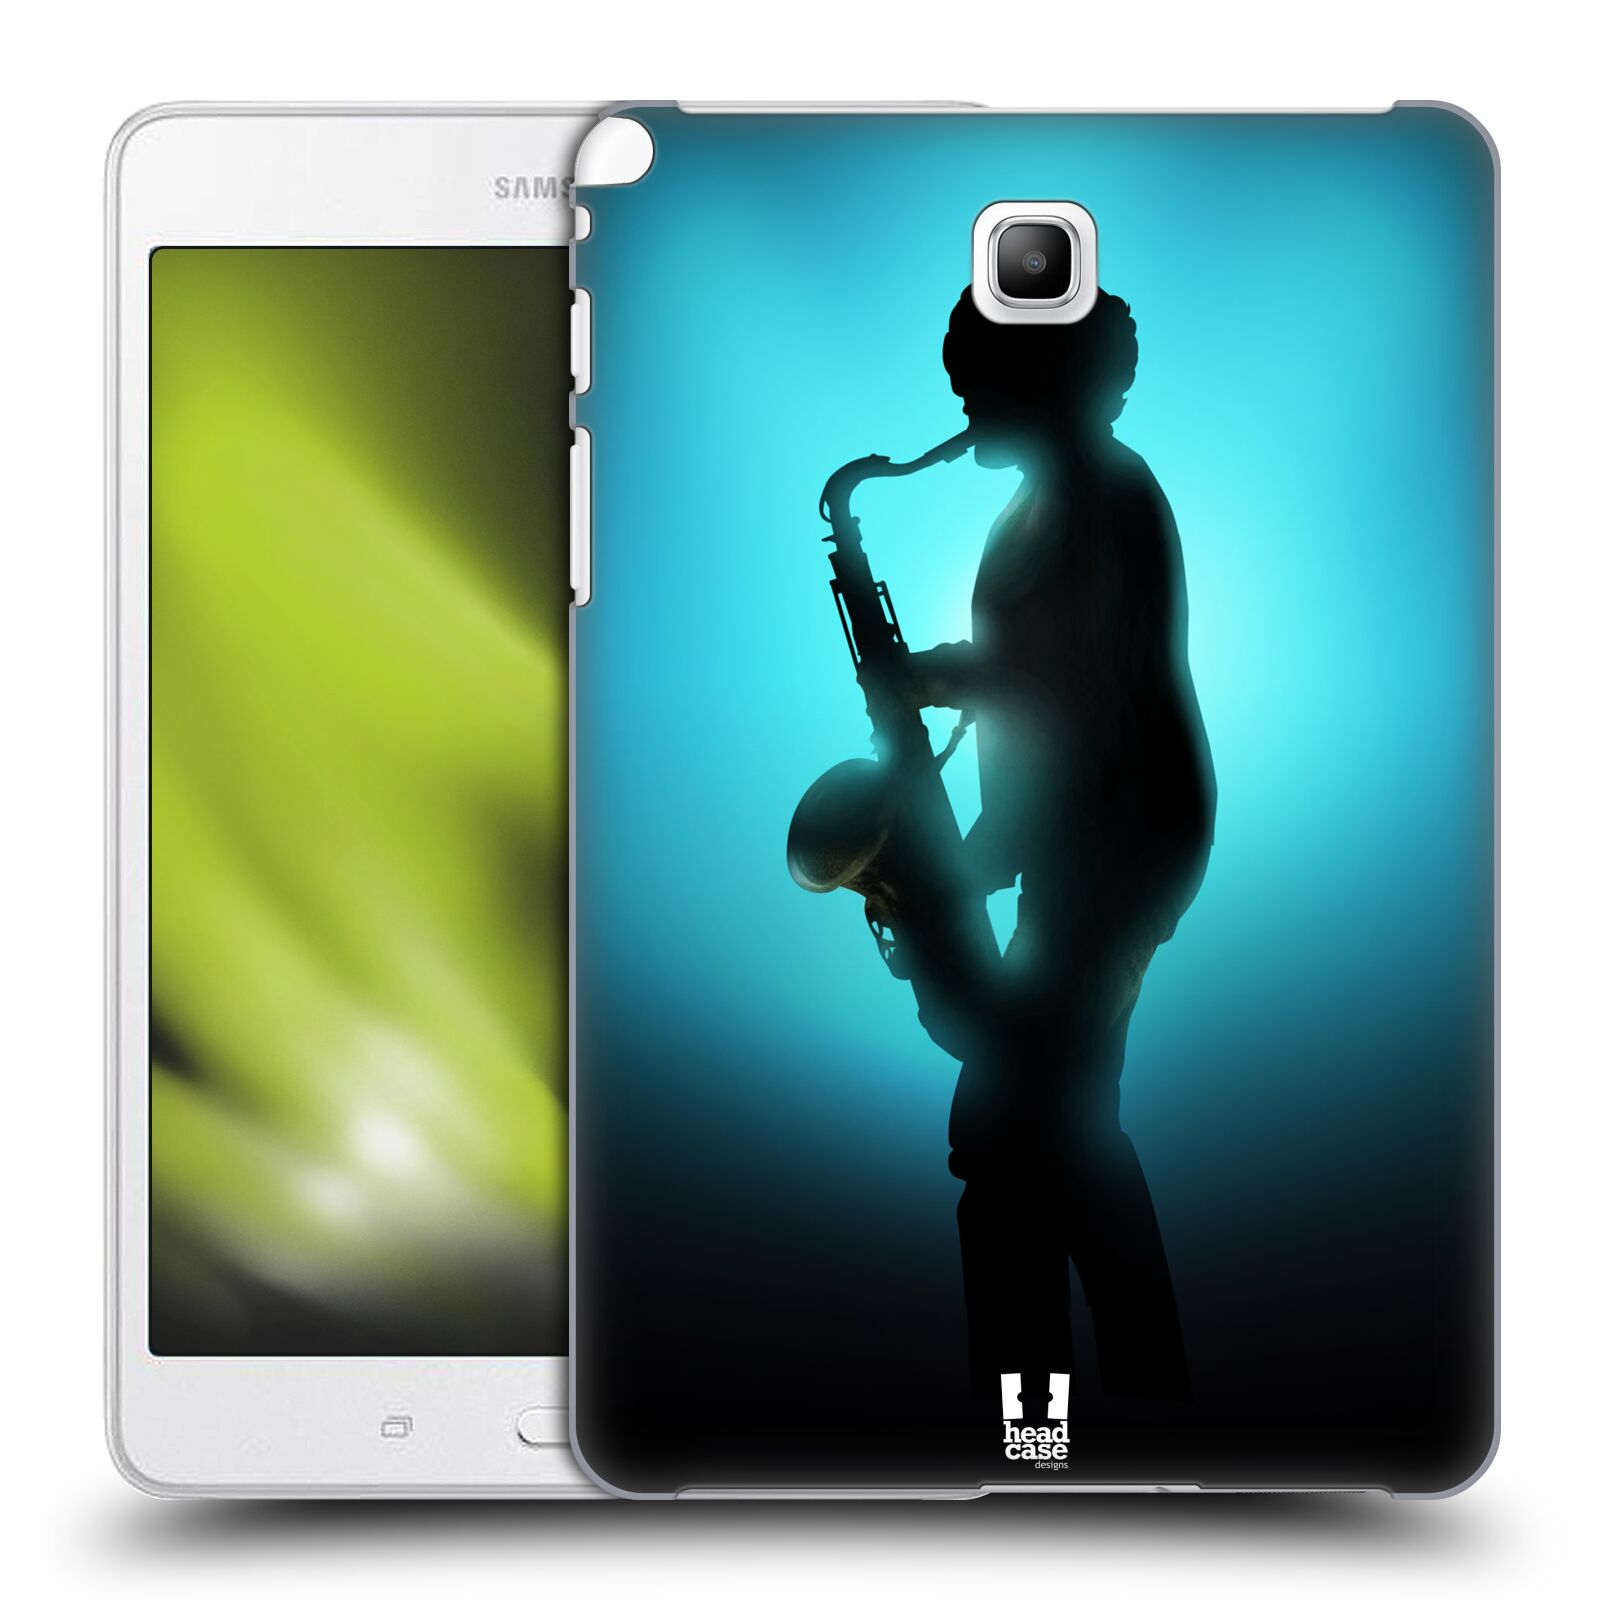 HEAD CASE DESIGNS SILHOUETTE PERFORMERS HARD BACK CASE FOR ...